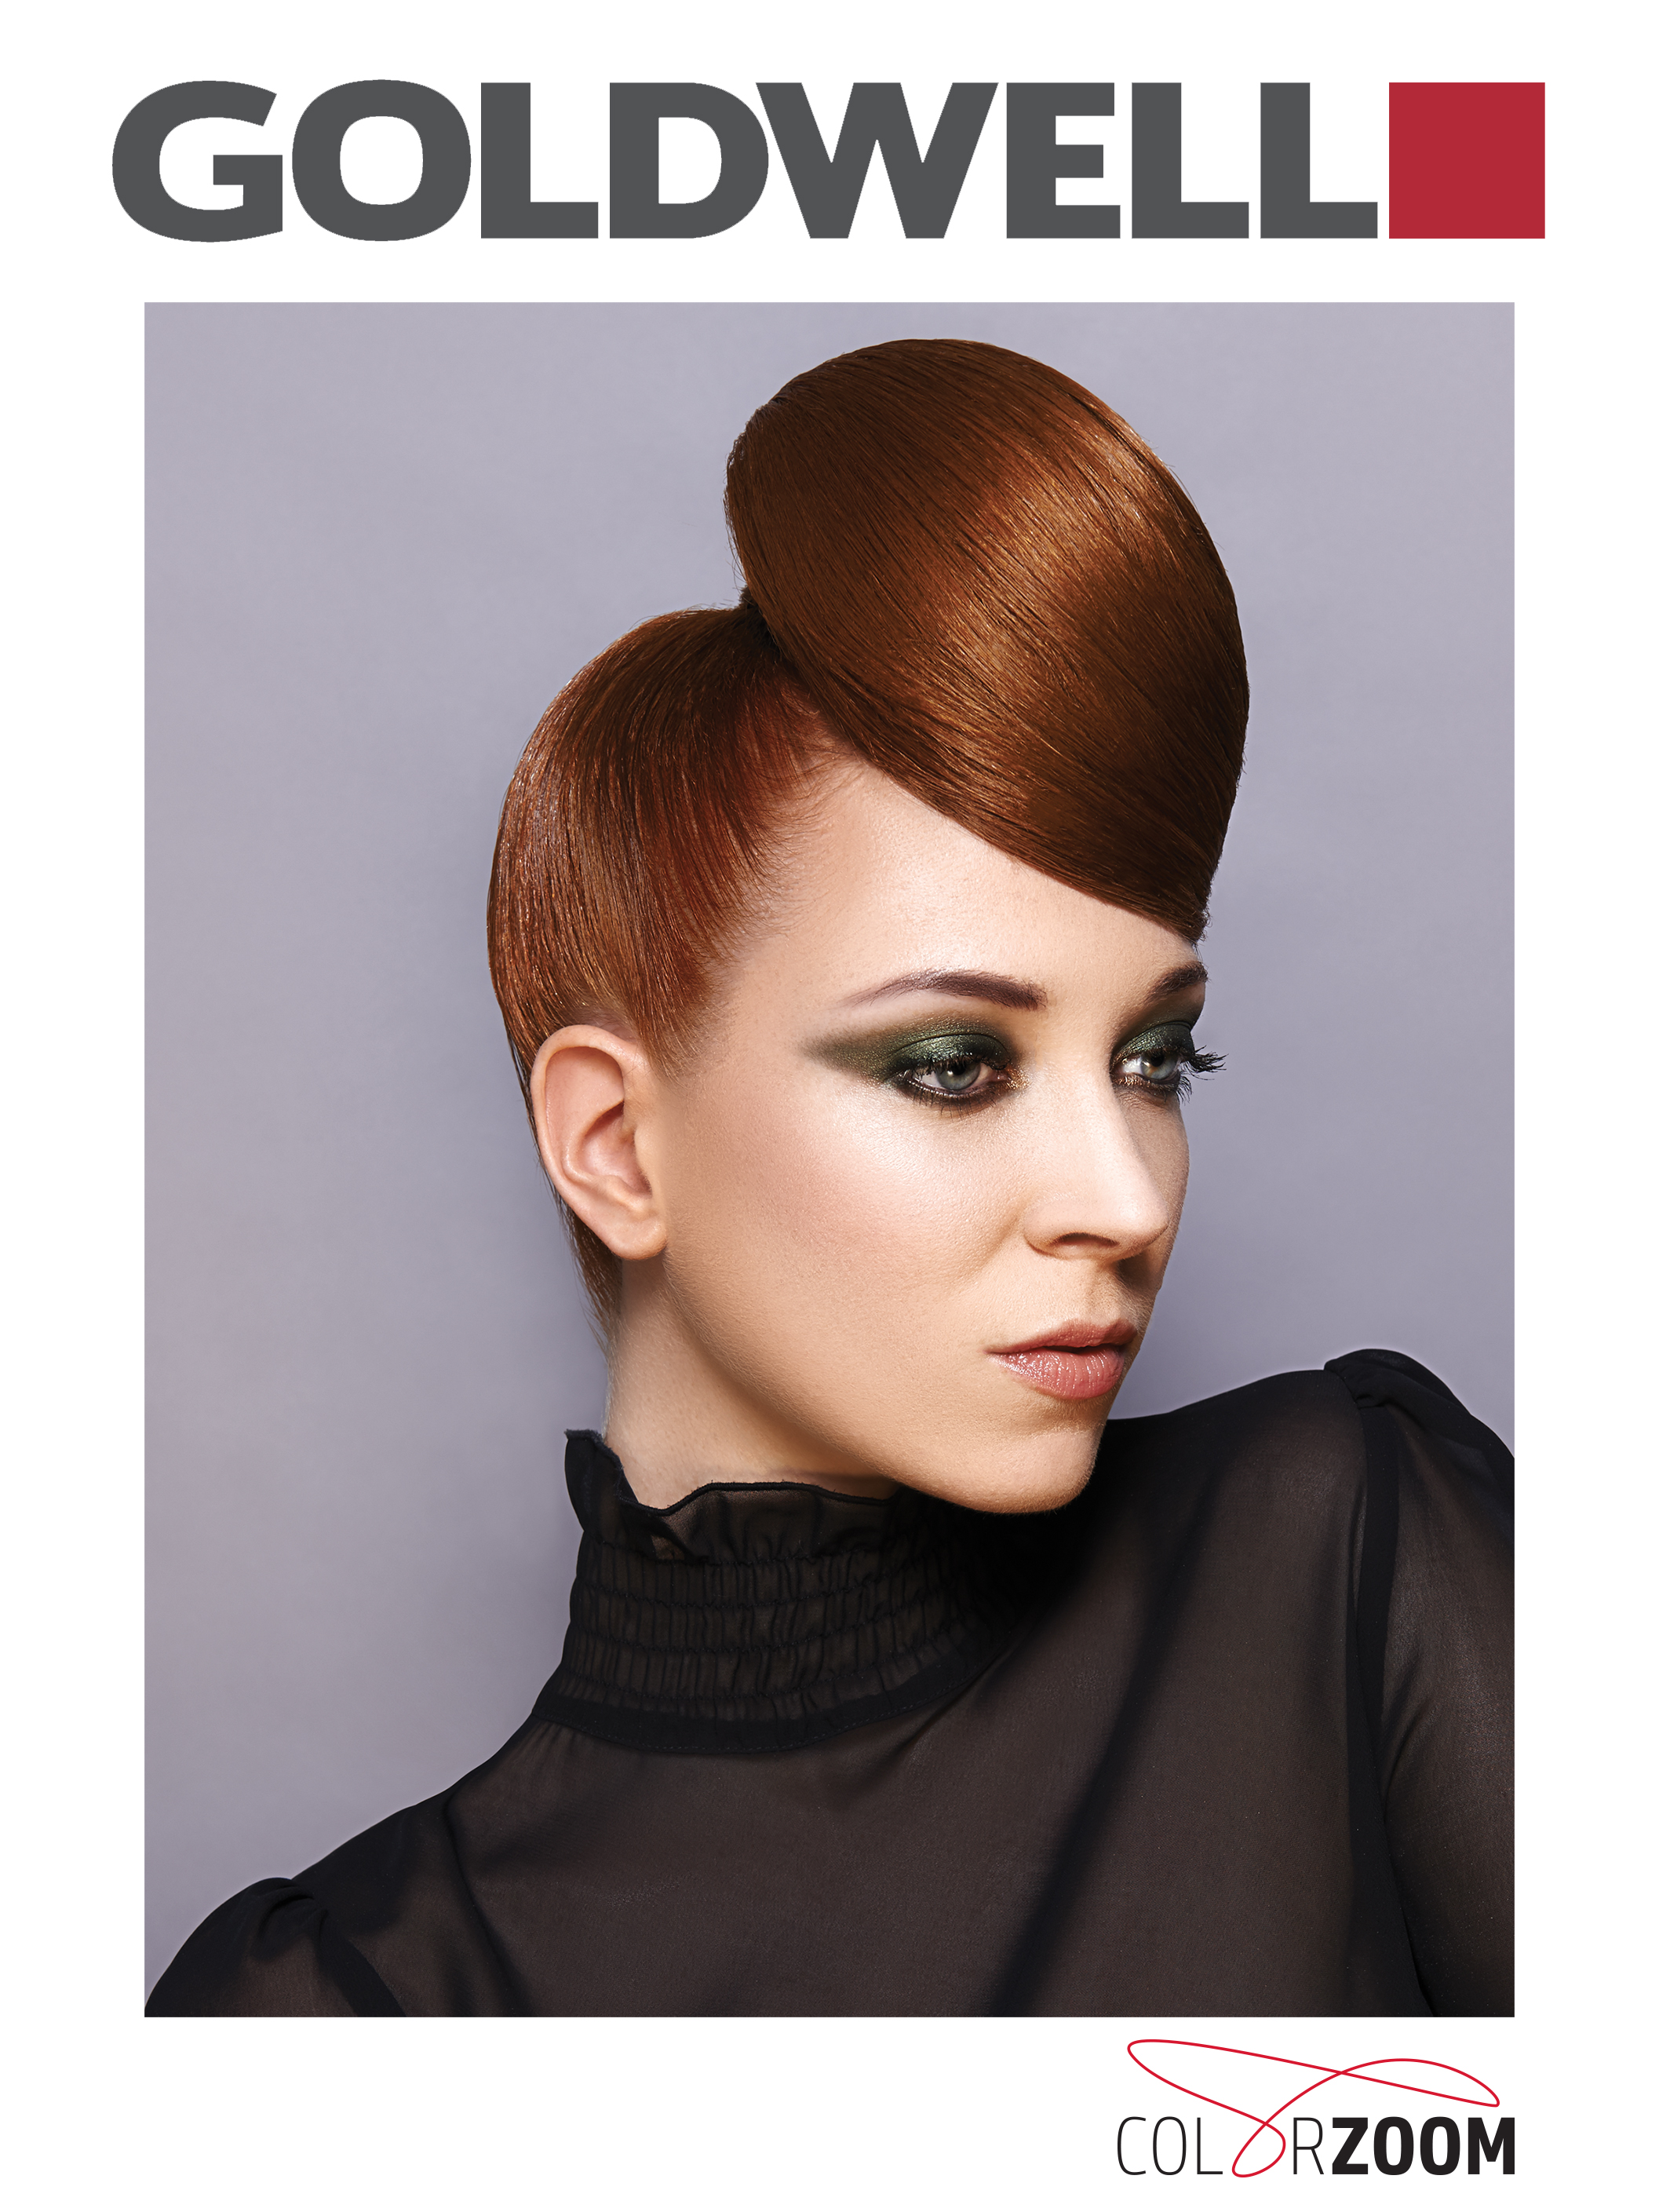 Goldwell Color Zoom 2014